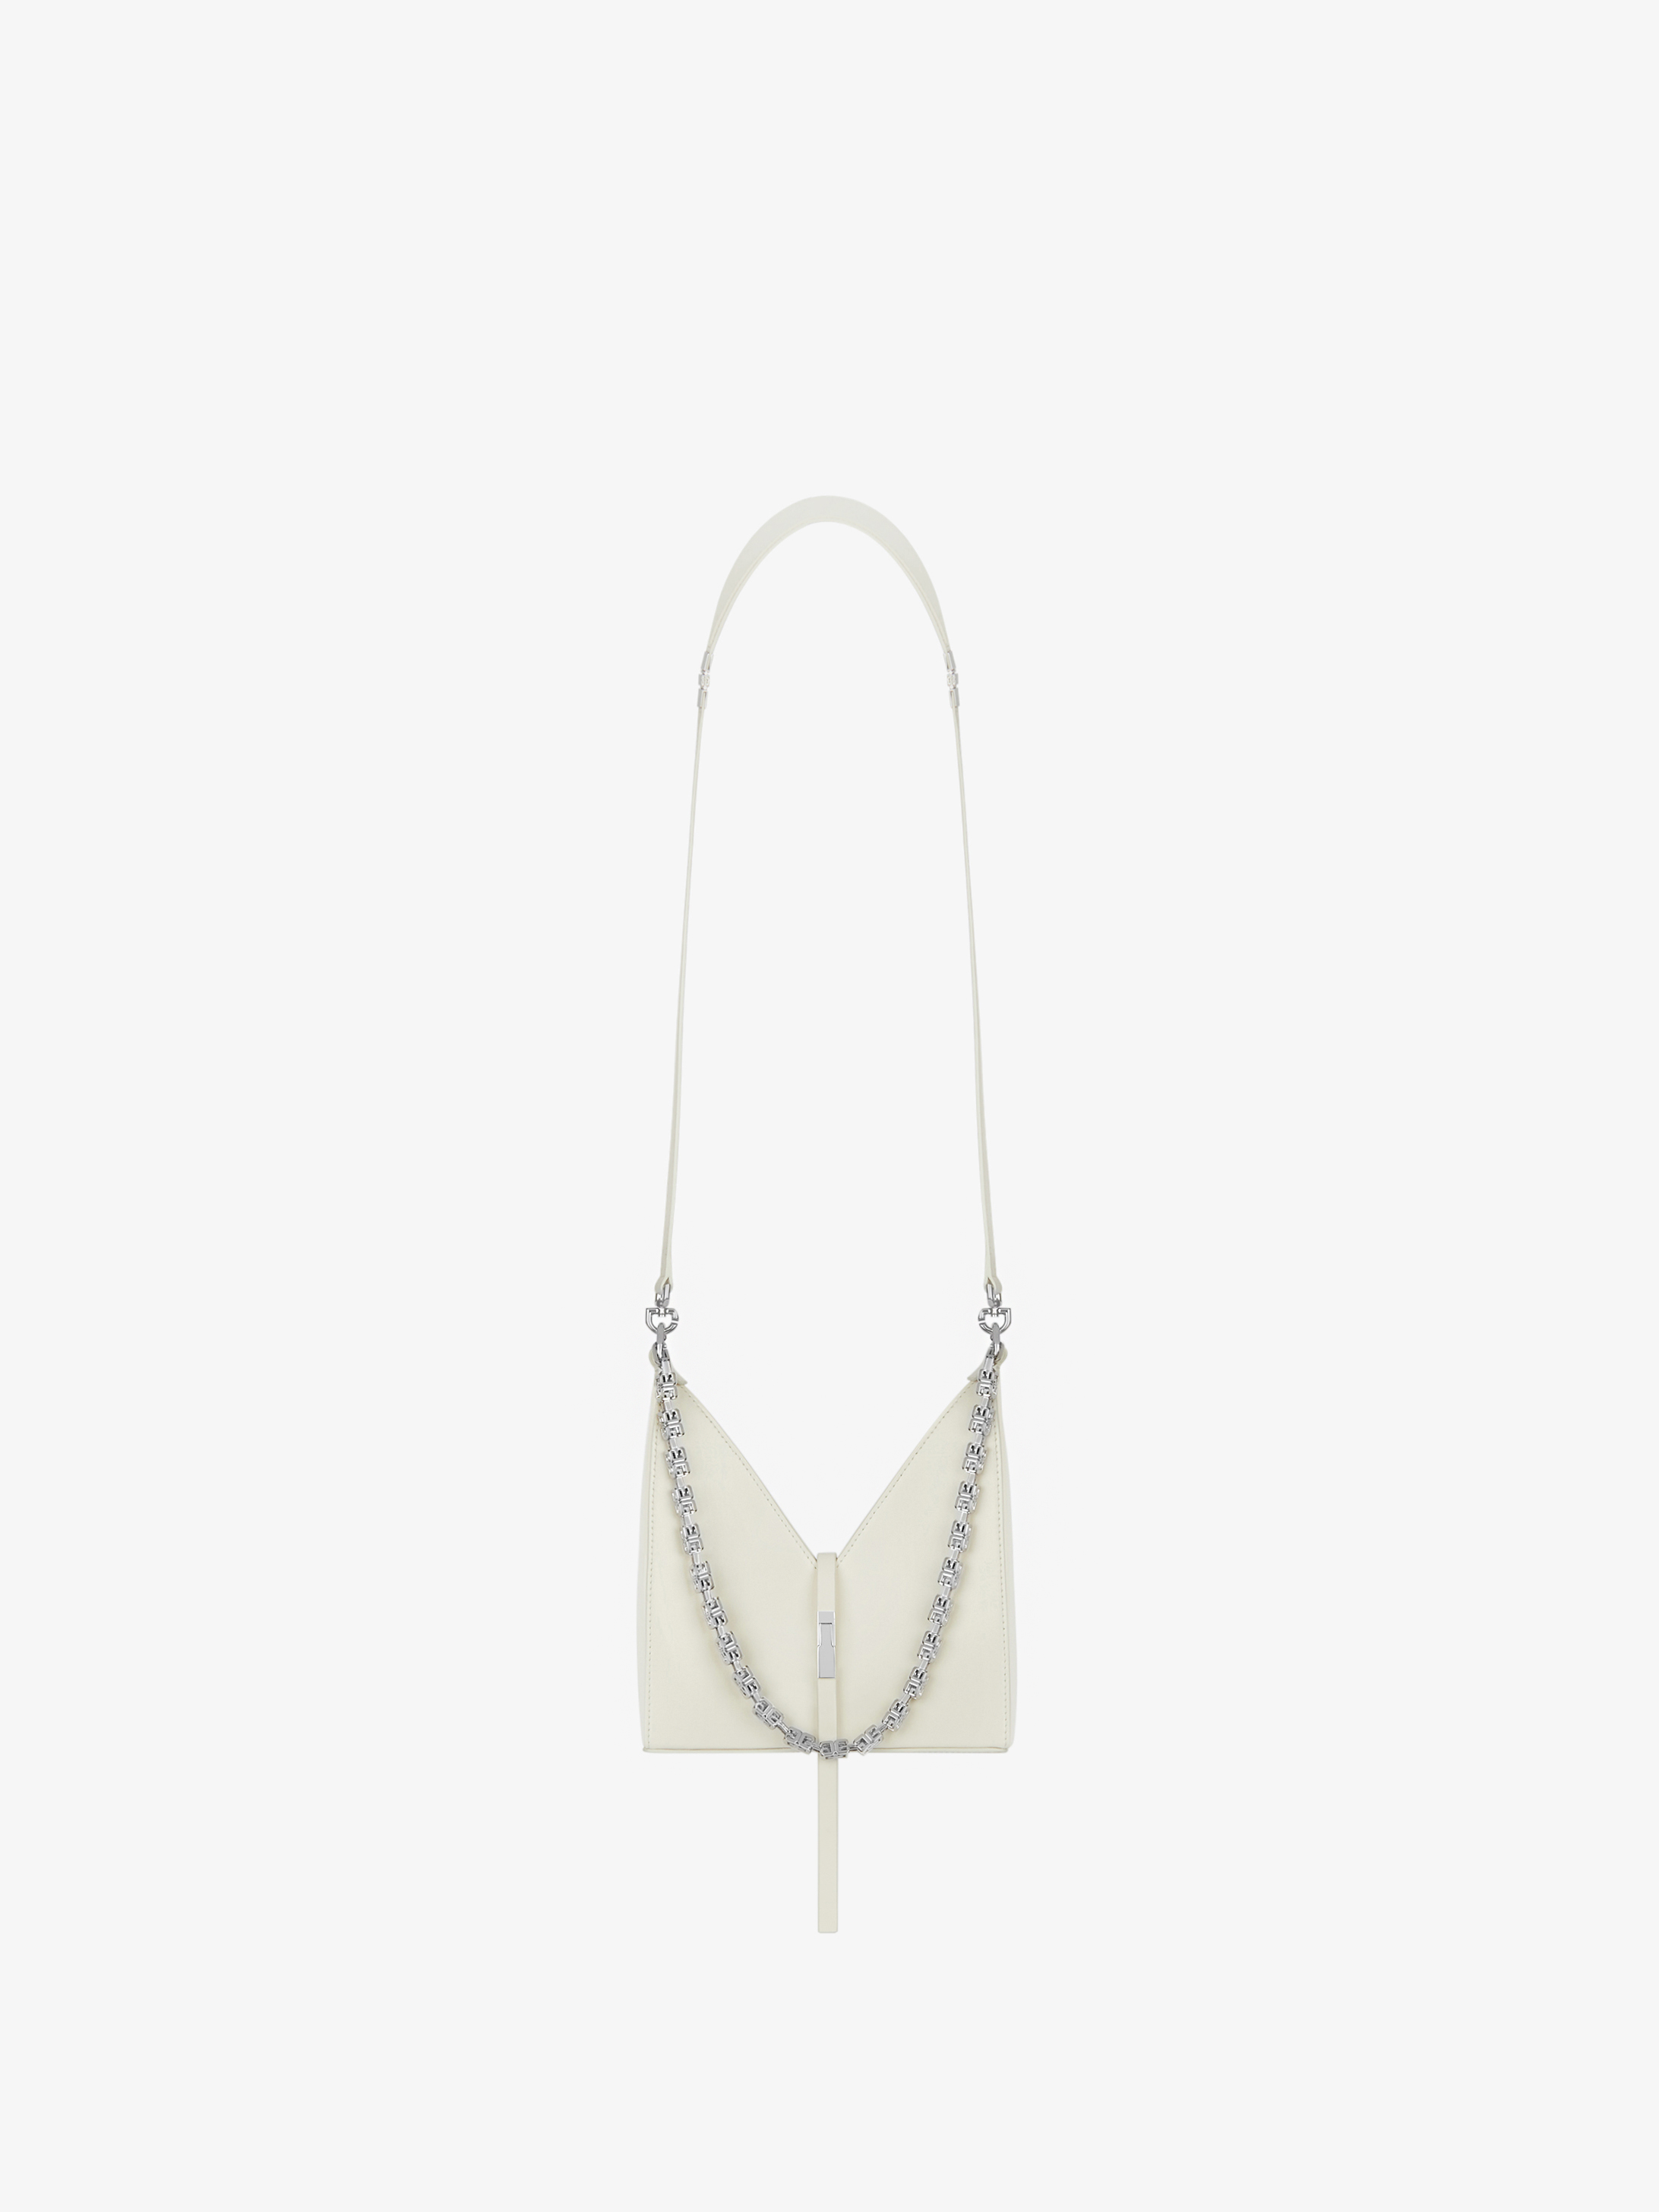 Mini Cut Out bag in box leather with chain